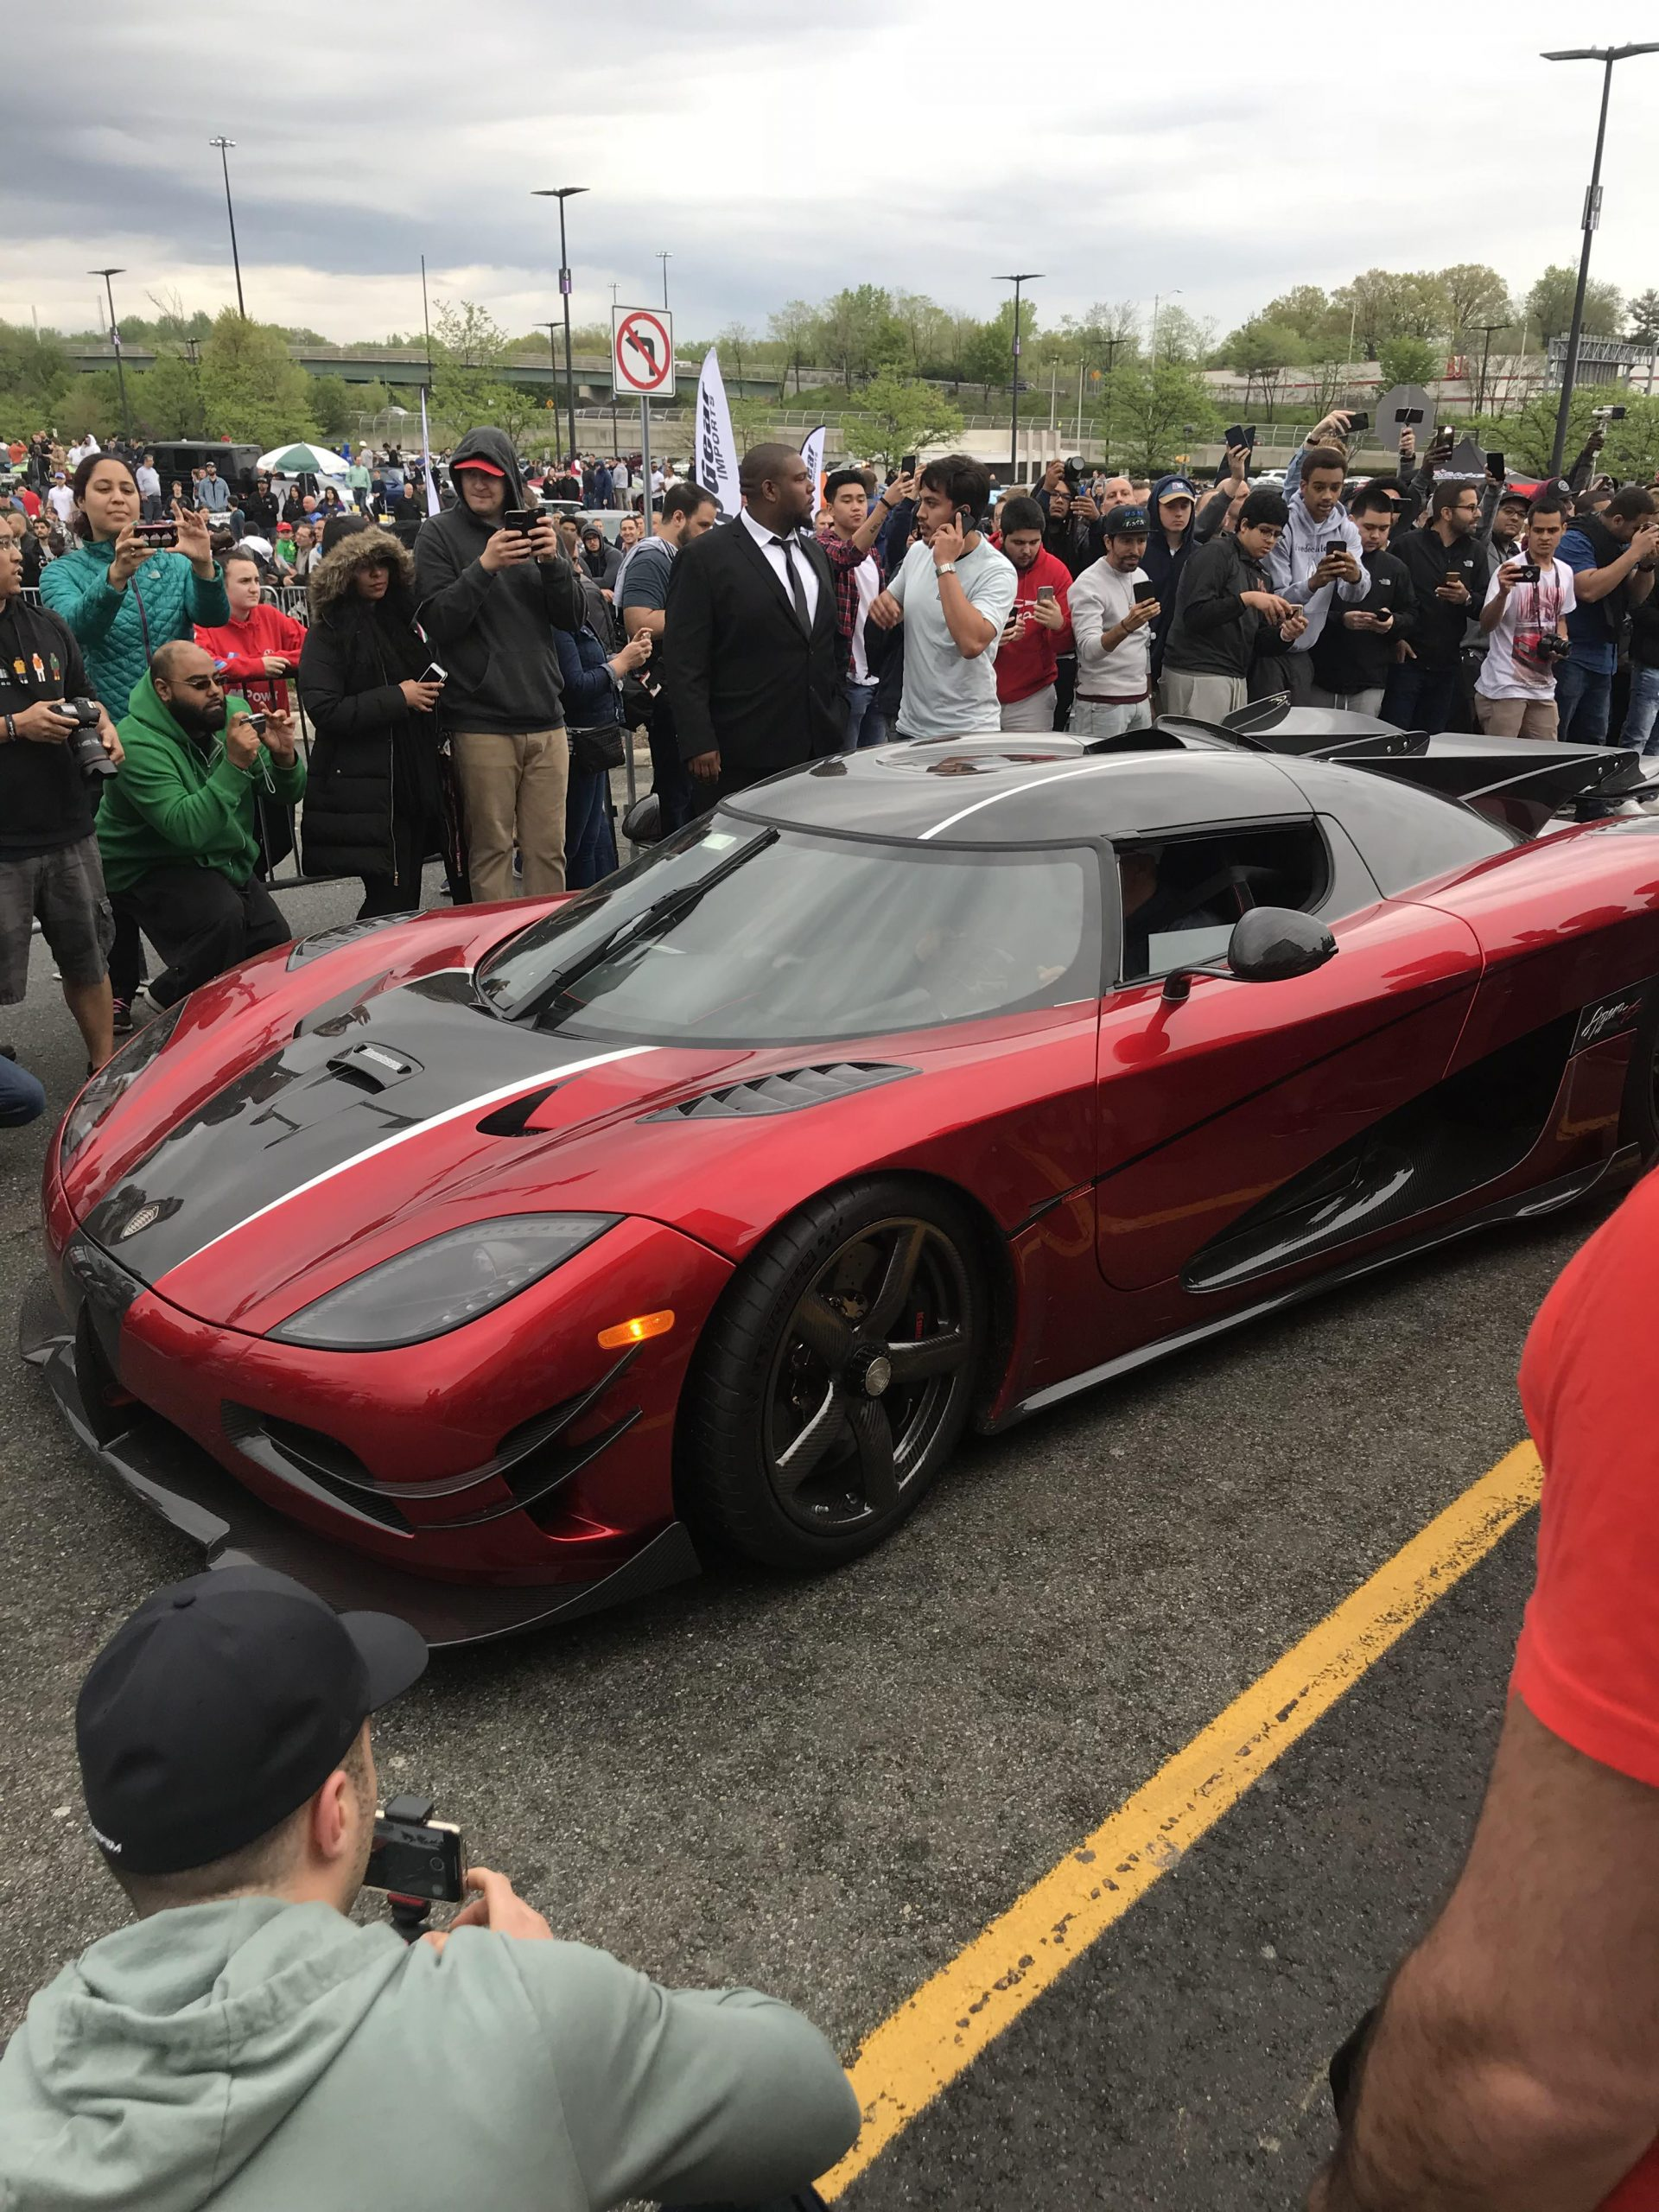 Seeing a Koenigsegg for the first time